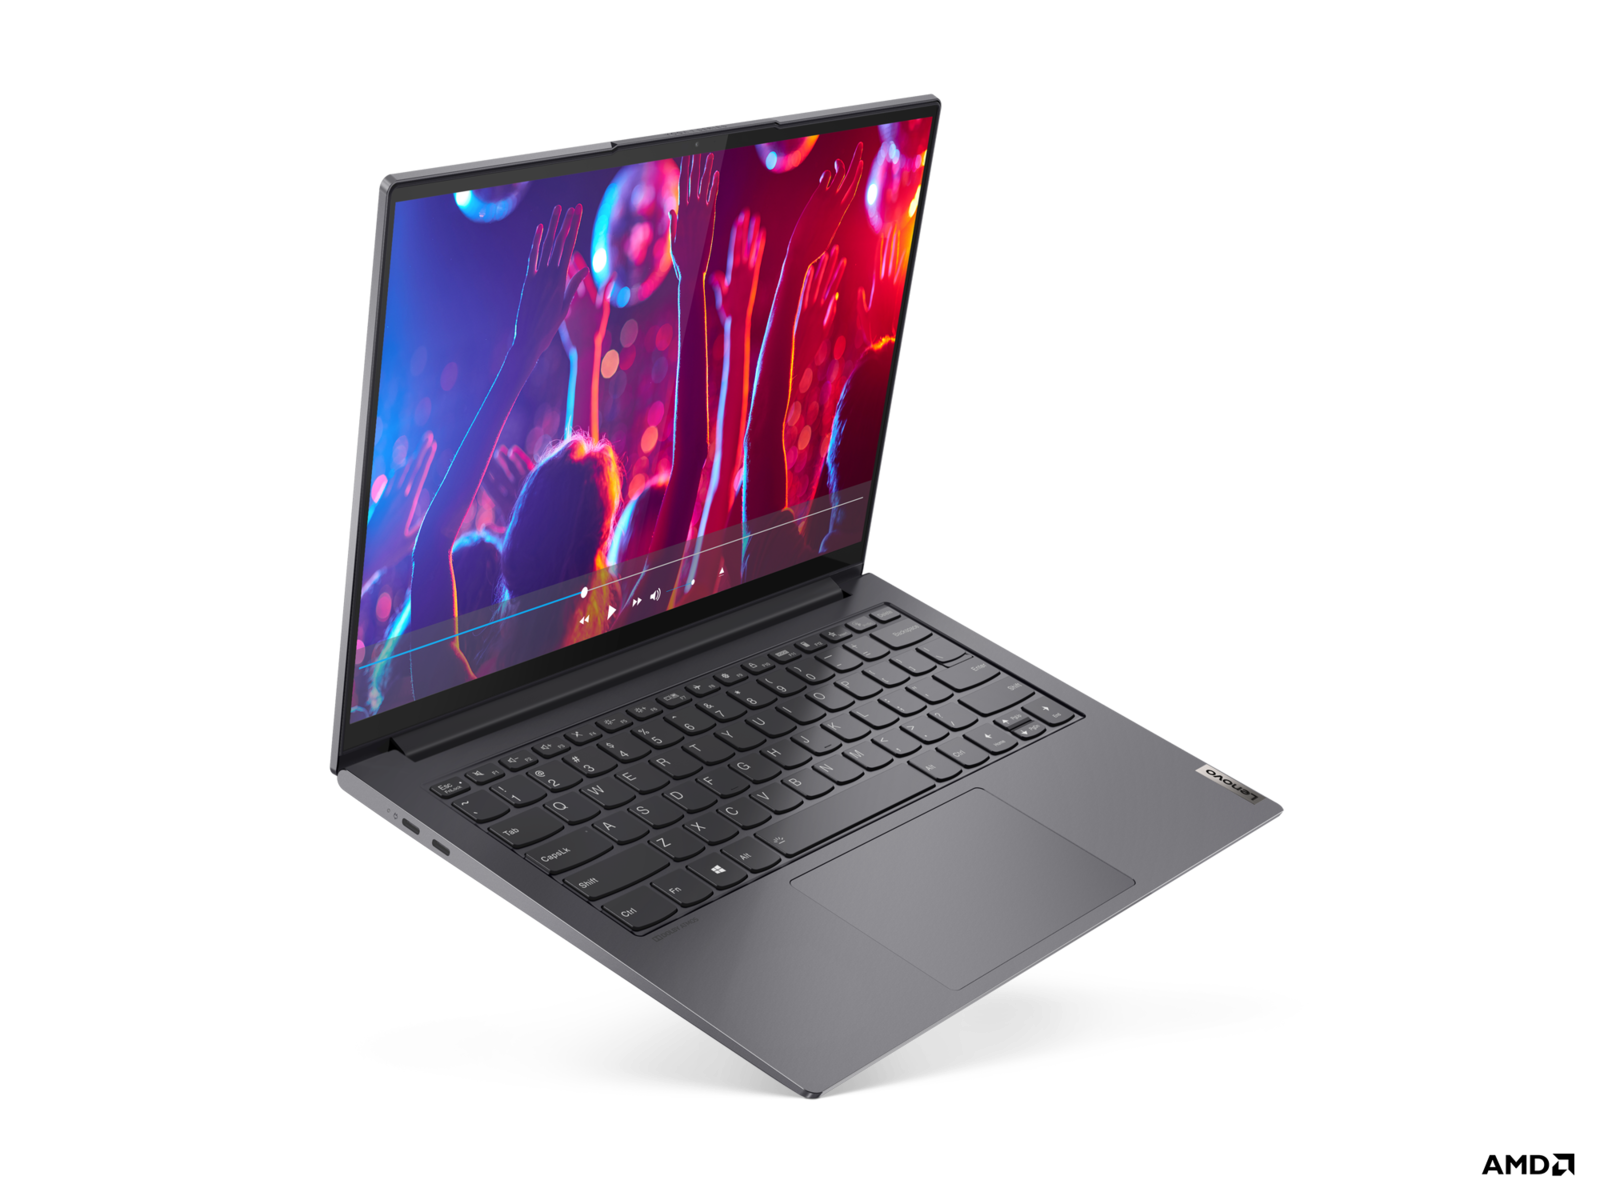 Lenovo Yoga Slim 7 Pro Combines Amd Ryzen 9 4900h With 14 Inch 16 10 Screen Notebookcheck Net News